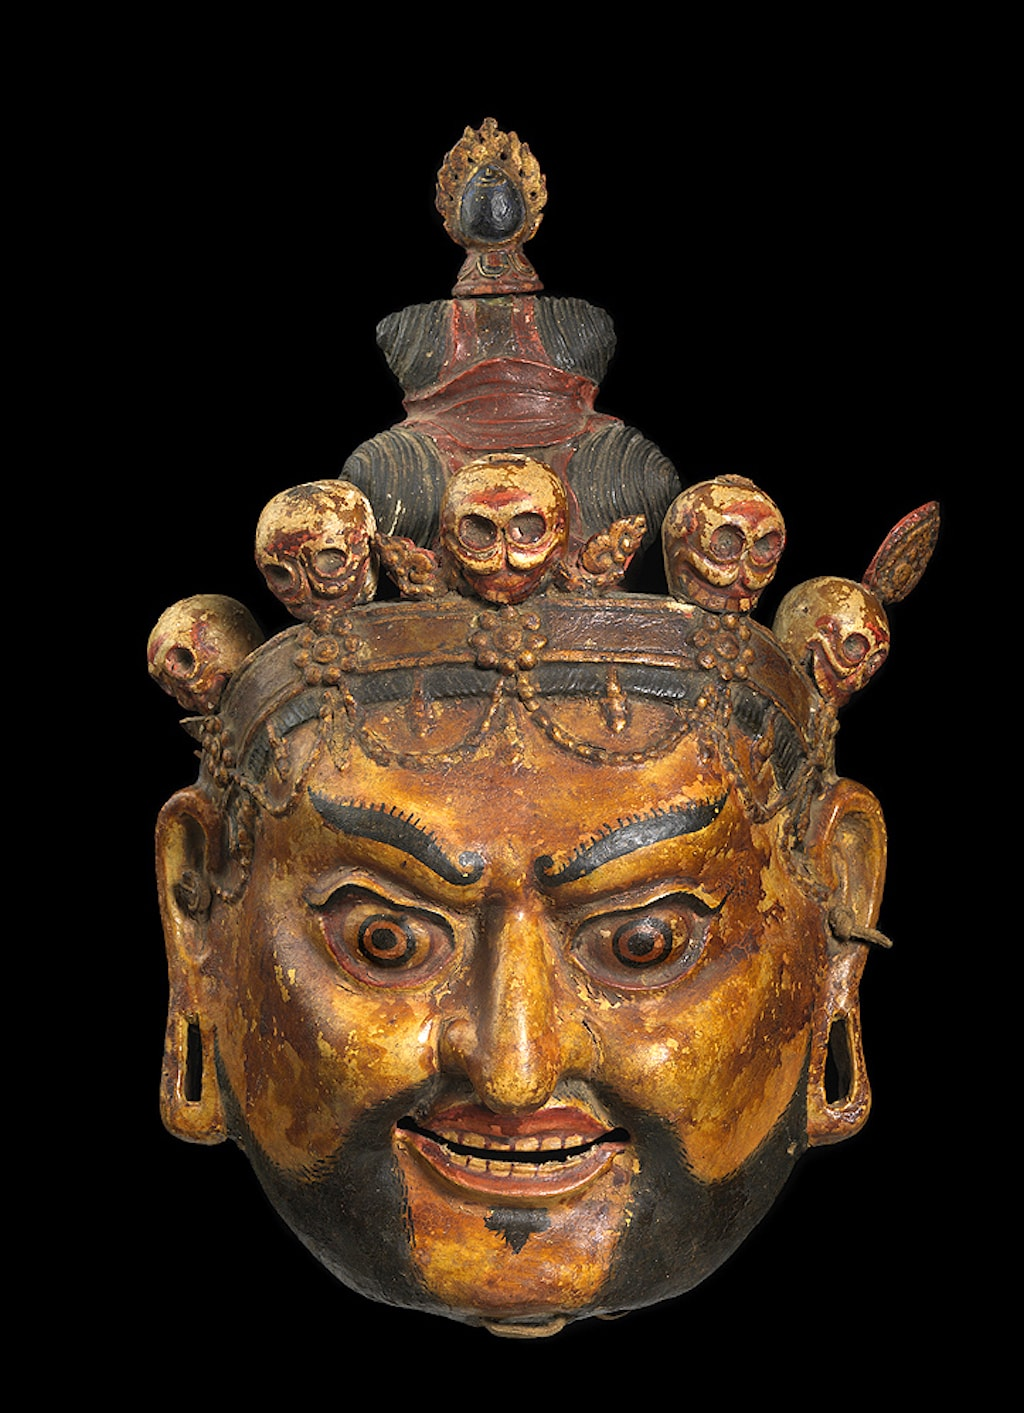 Ritual Dance Mask of Padmasambhava as Nyima Ozer (One of the Eight Manifestations of Guru Rinpoche). Bhutan; ca. 18th–19th century. Papier-mâché and pigment, leather. | Courtesy of the Bruce Miller Collection